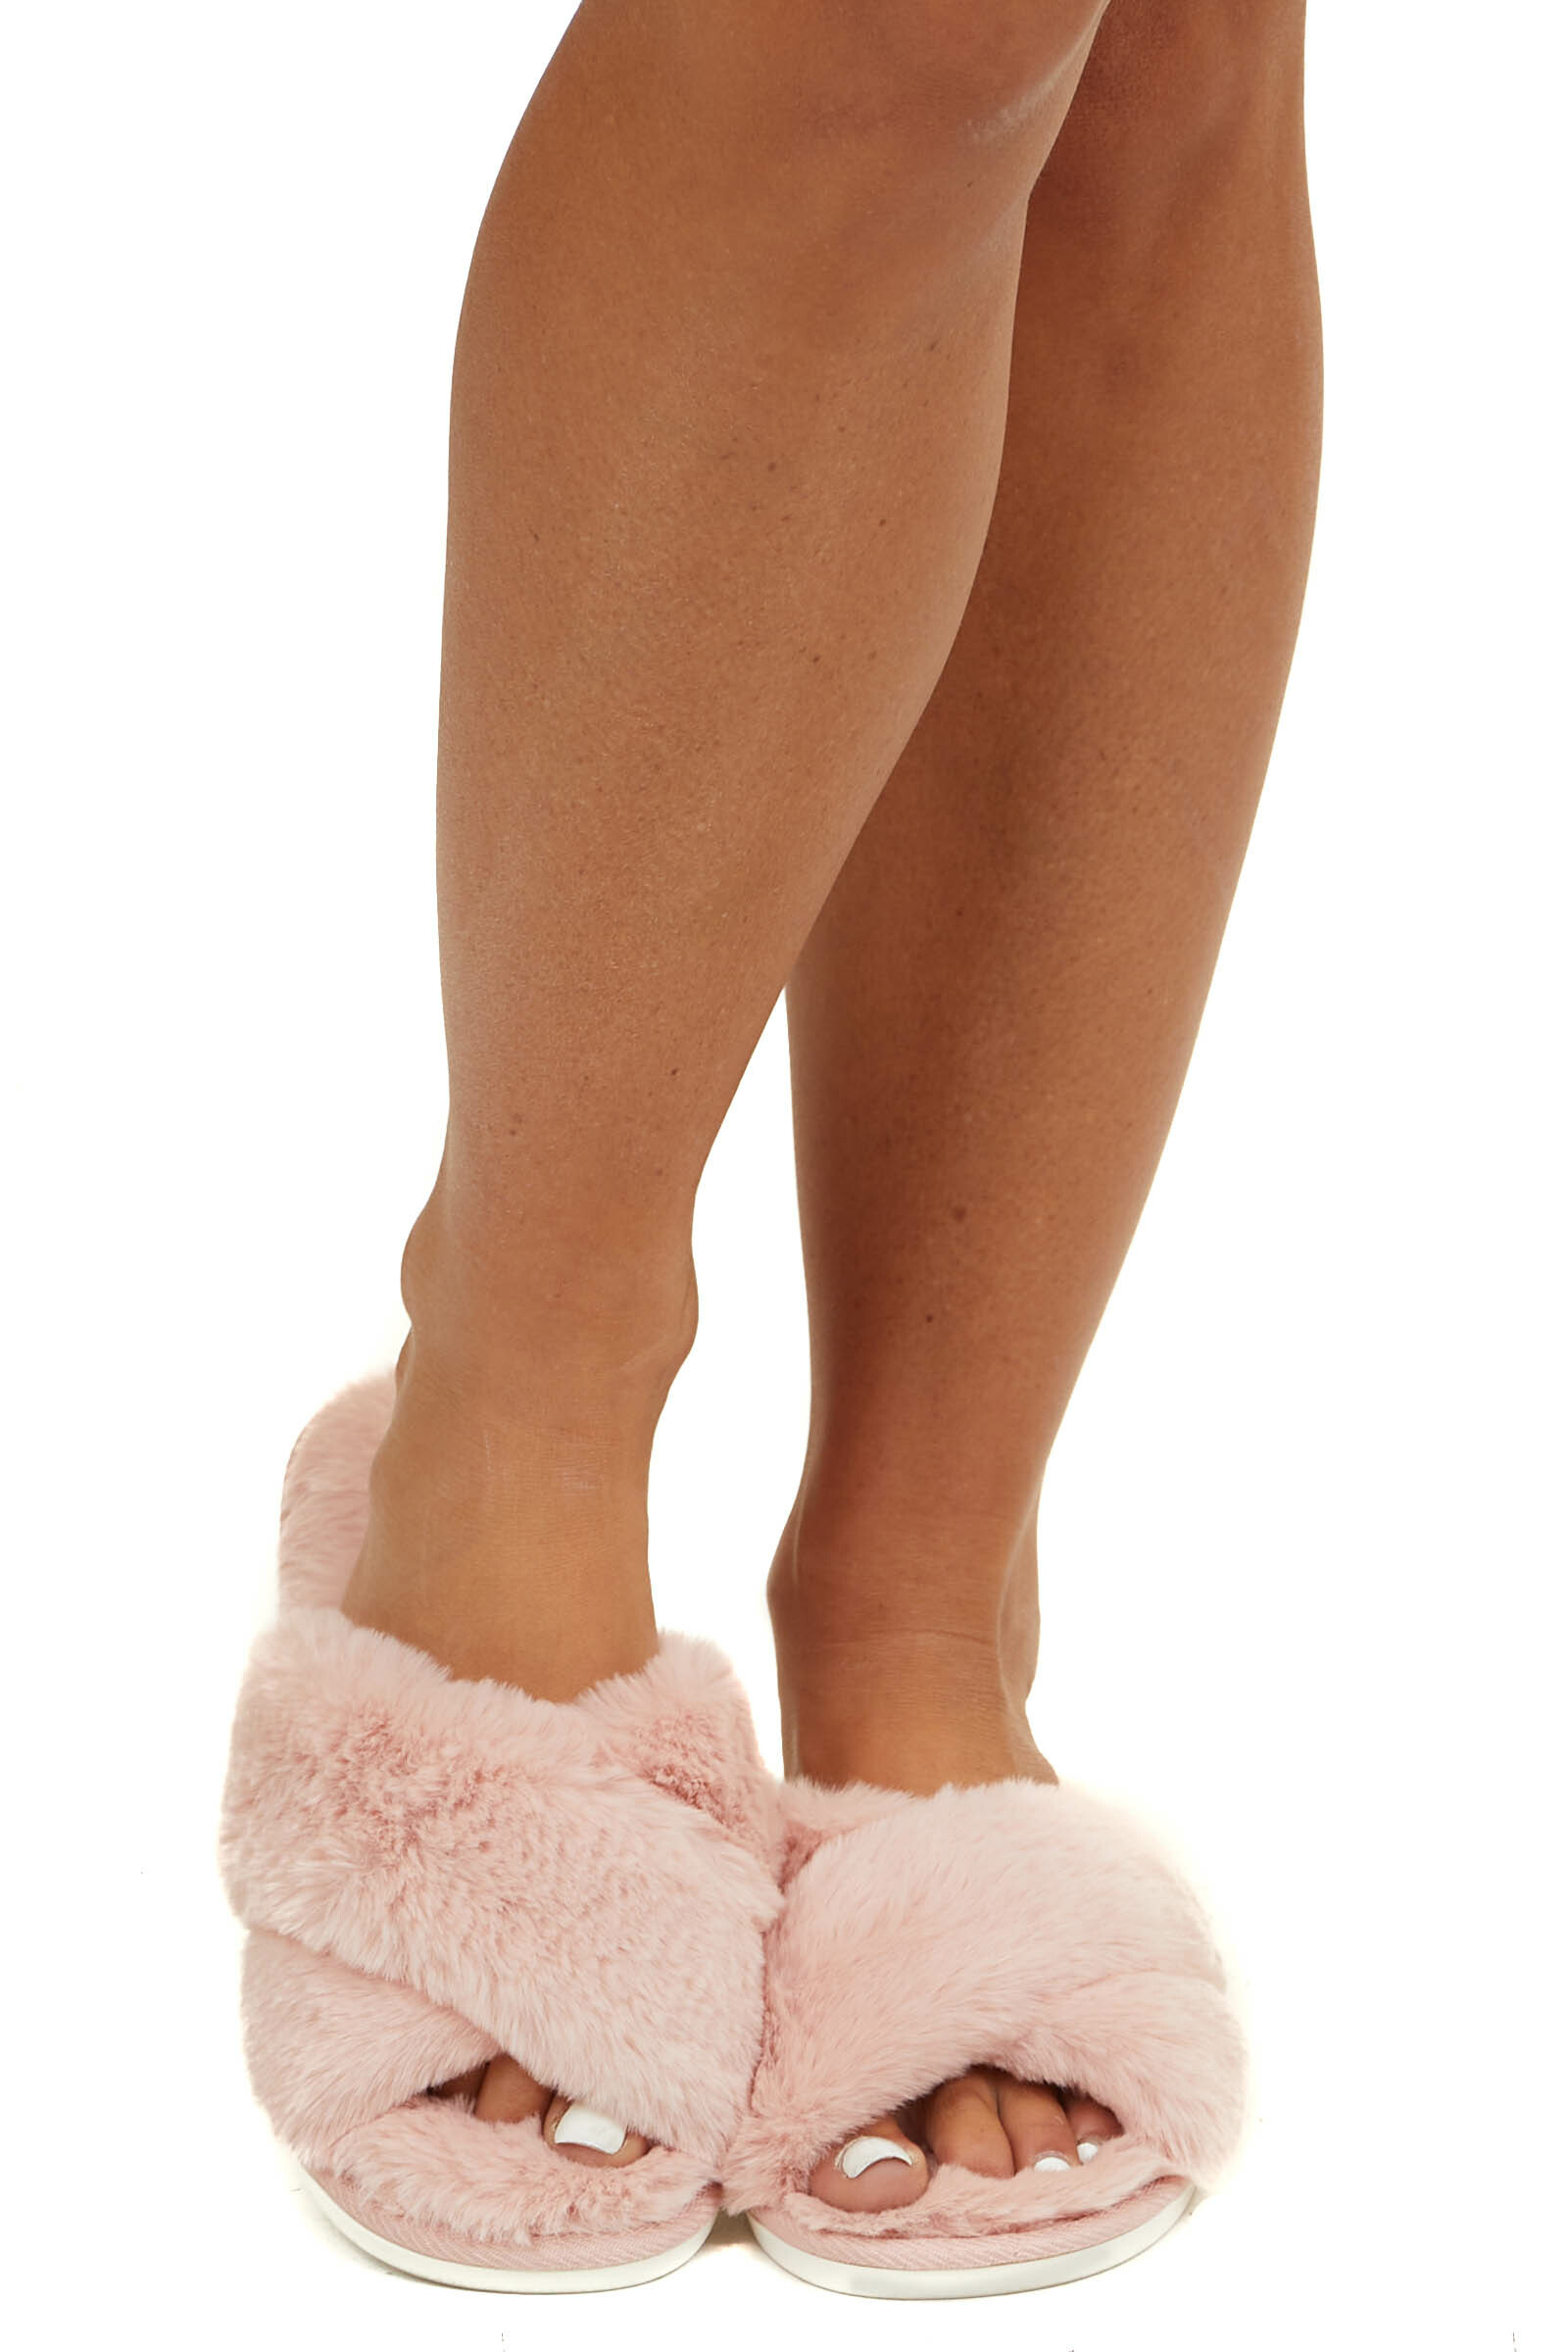 Pale Pink Faux Fur Slippers with Memory Foam Sole